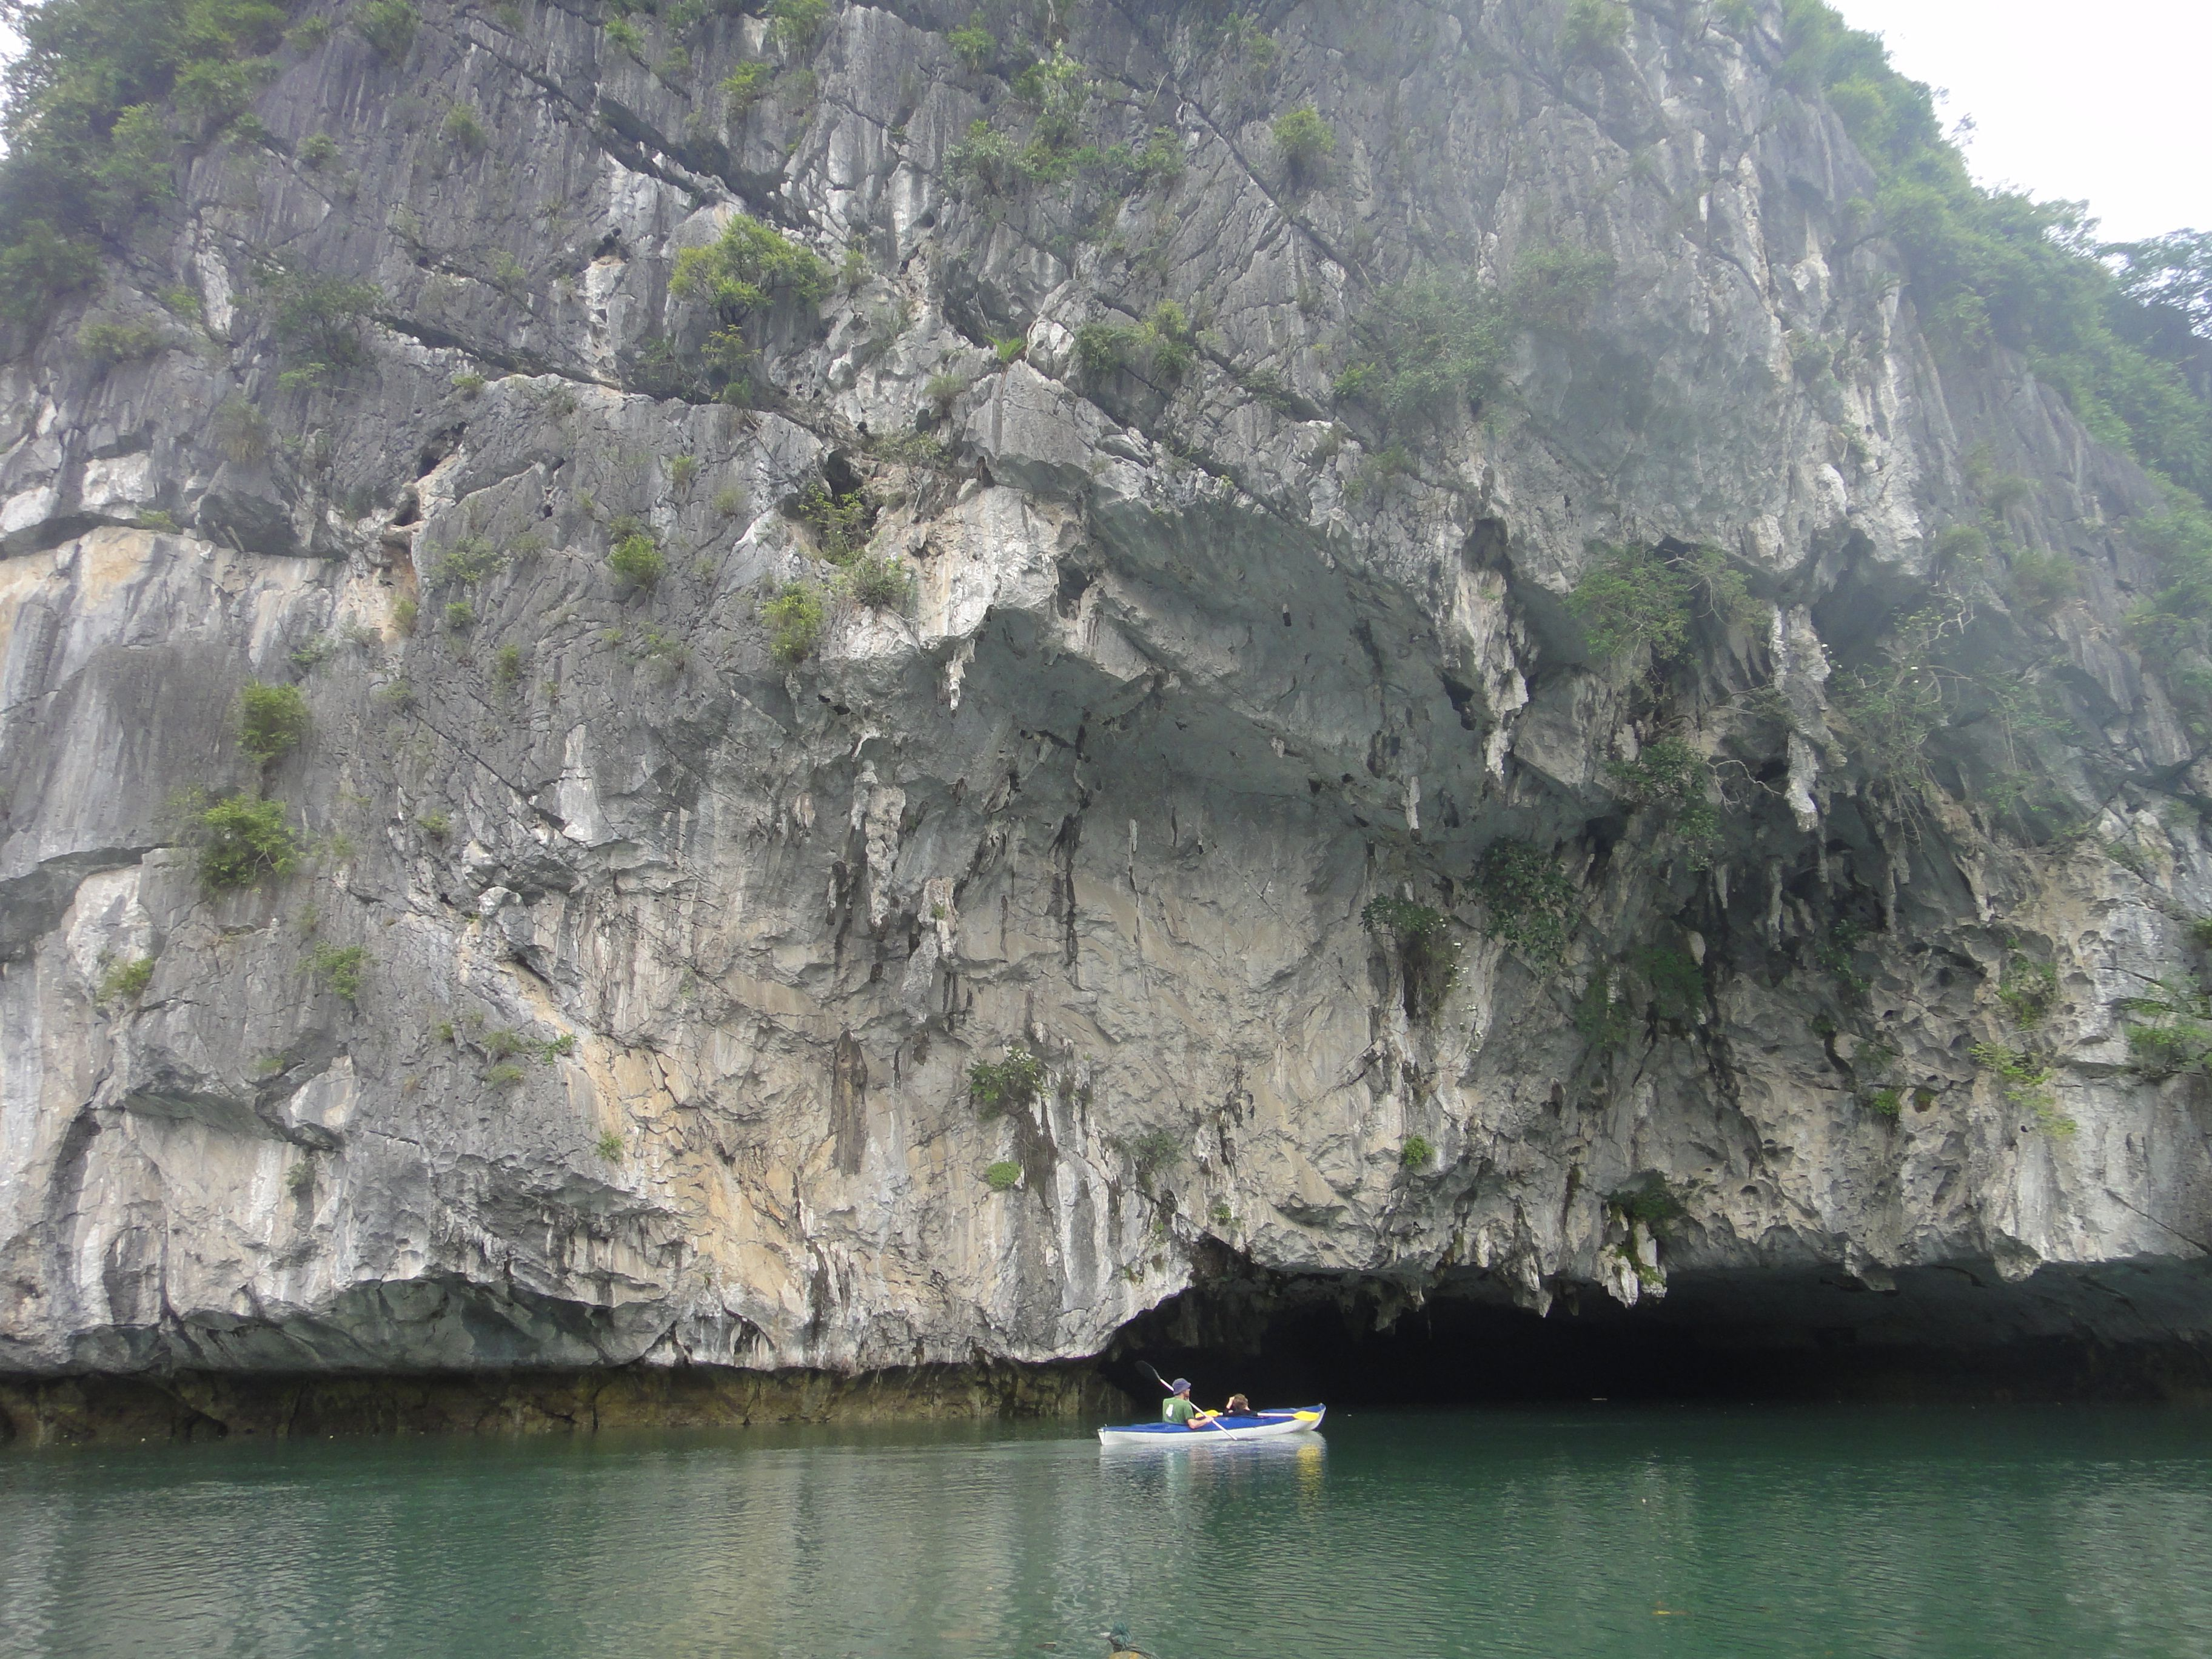 Kayaking into cave archway in base of cliffs, Halong Bay, Vietnam.